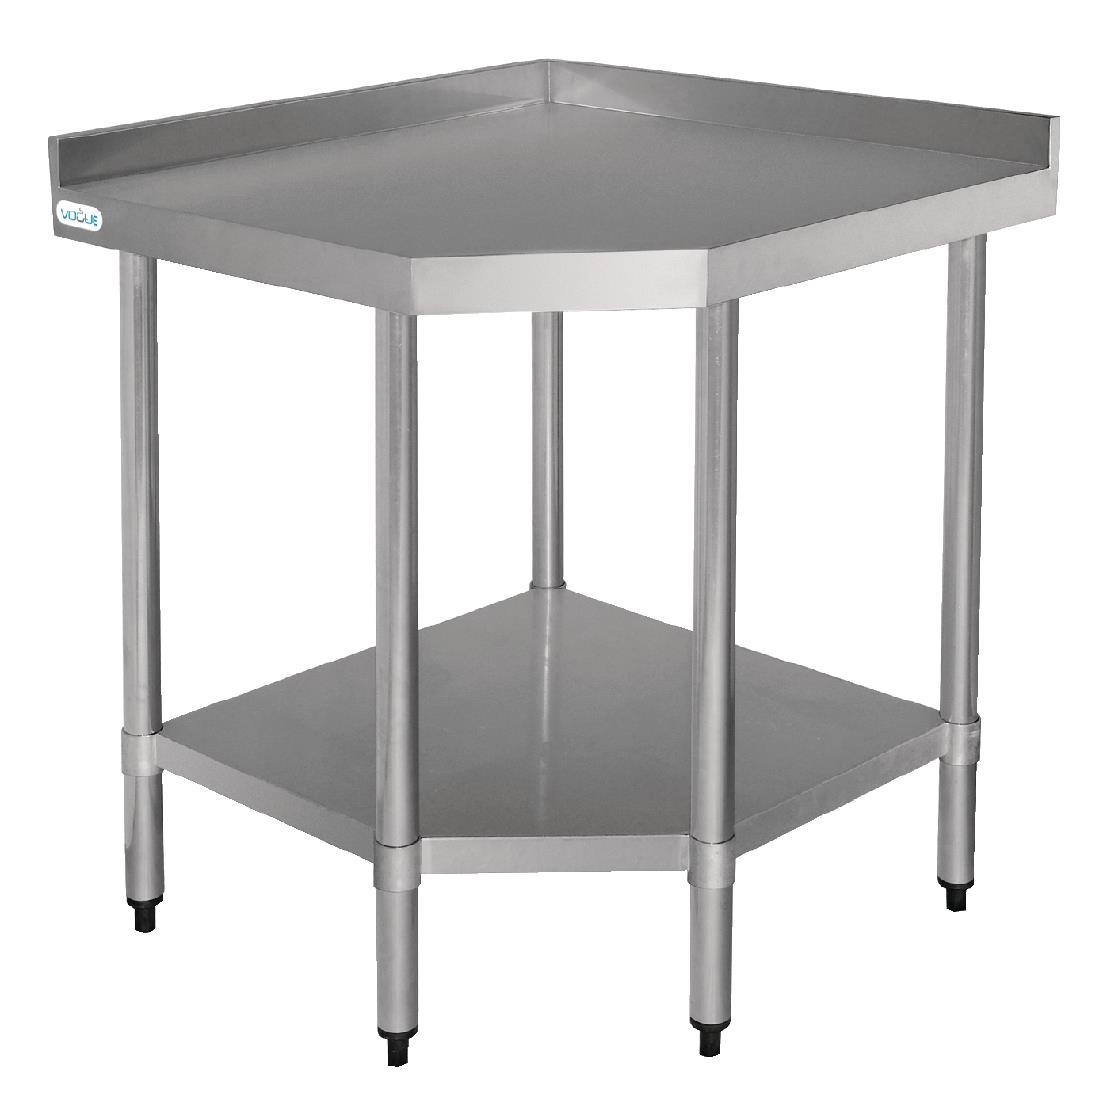 Vogue Stainless Steel Corner Table 600mm CB907 Buy Online at